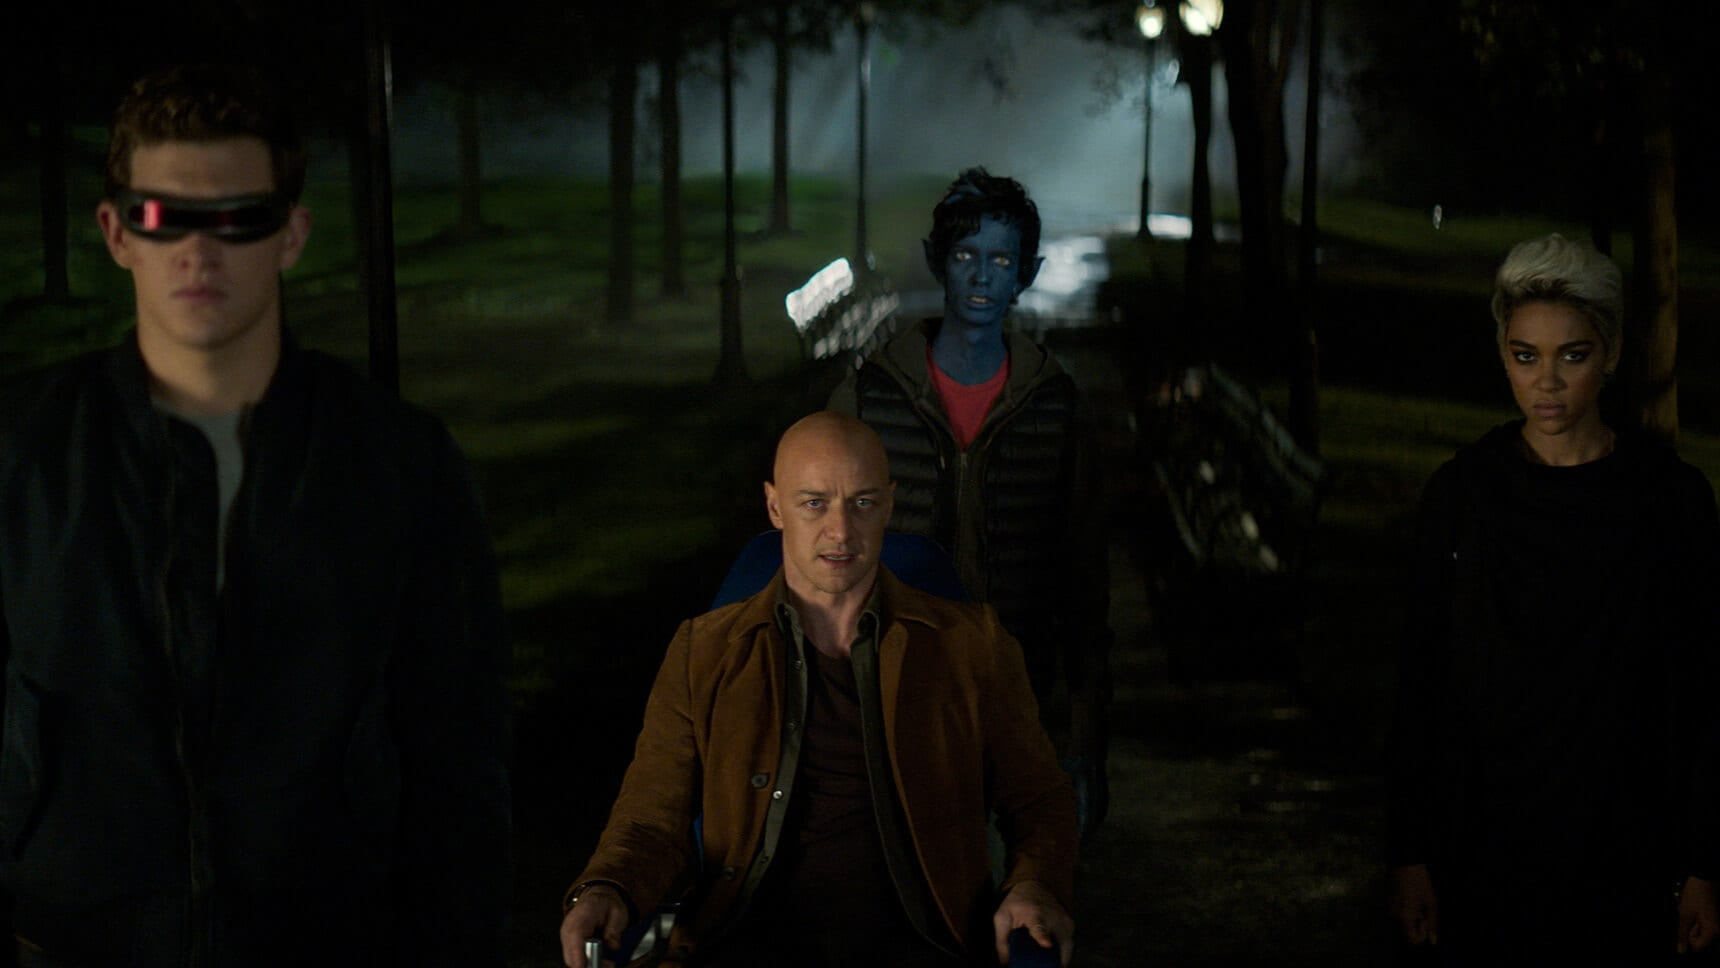 "Actors James McAvoy (as Professor Charles Xavier) Ty Sheridan (Cyclops), Kodi Smit-McPhee (as Kurt Wagner/Nightcrawler), and Alexandra Shipp (as Ororo Munroe/Storm) in the movie ""X-Men: Dark Phoenix"